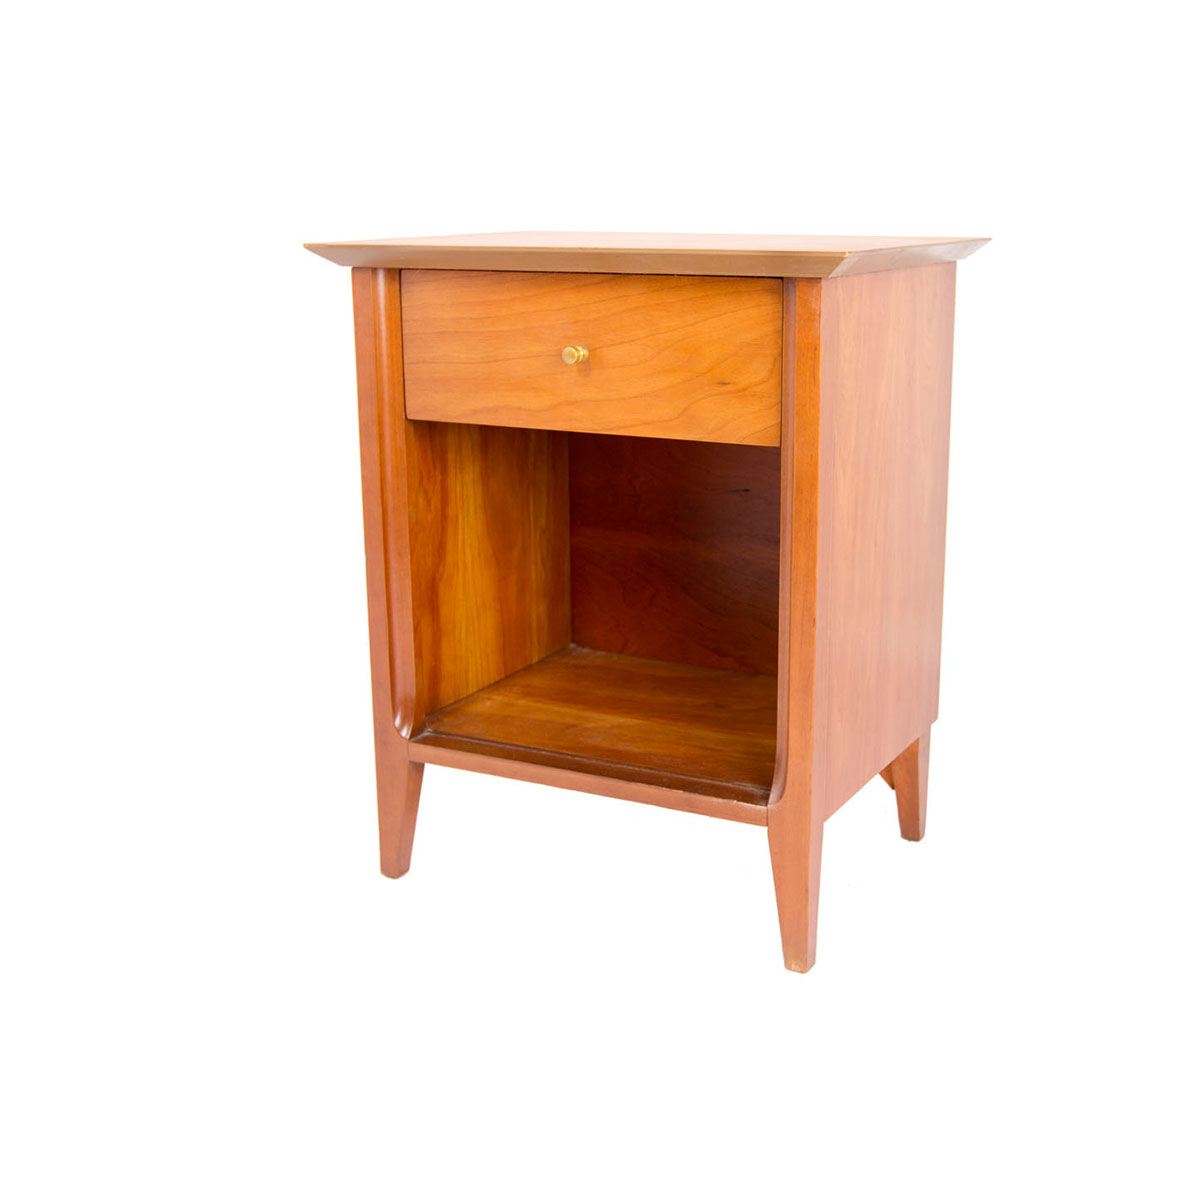 Pair of Tall & Thin MCM End Tables/Nightstands